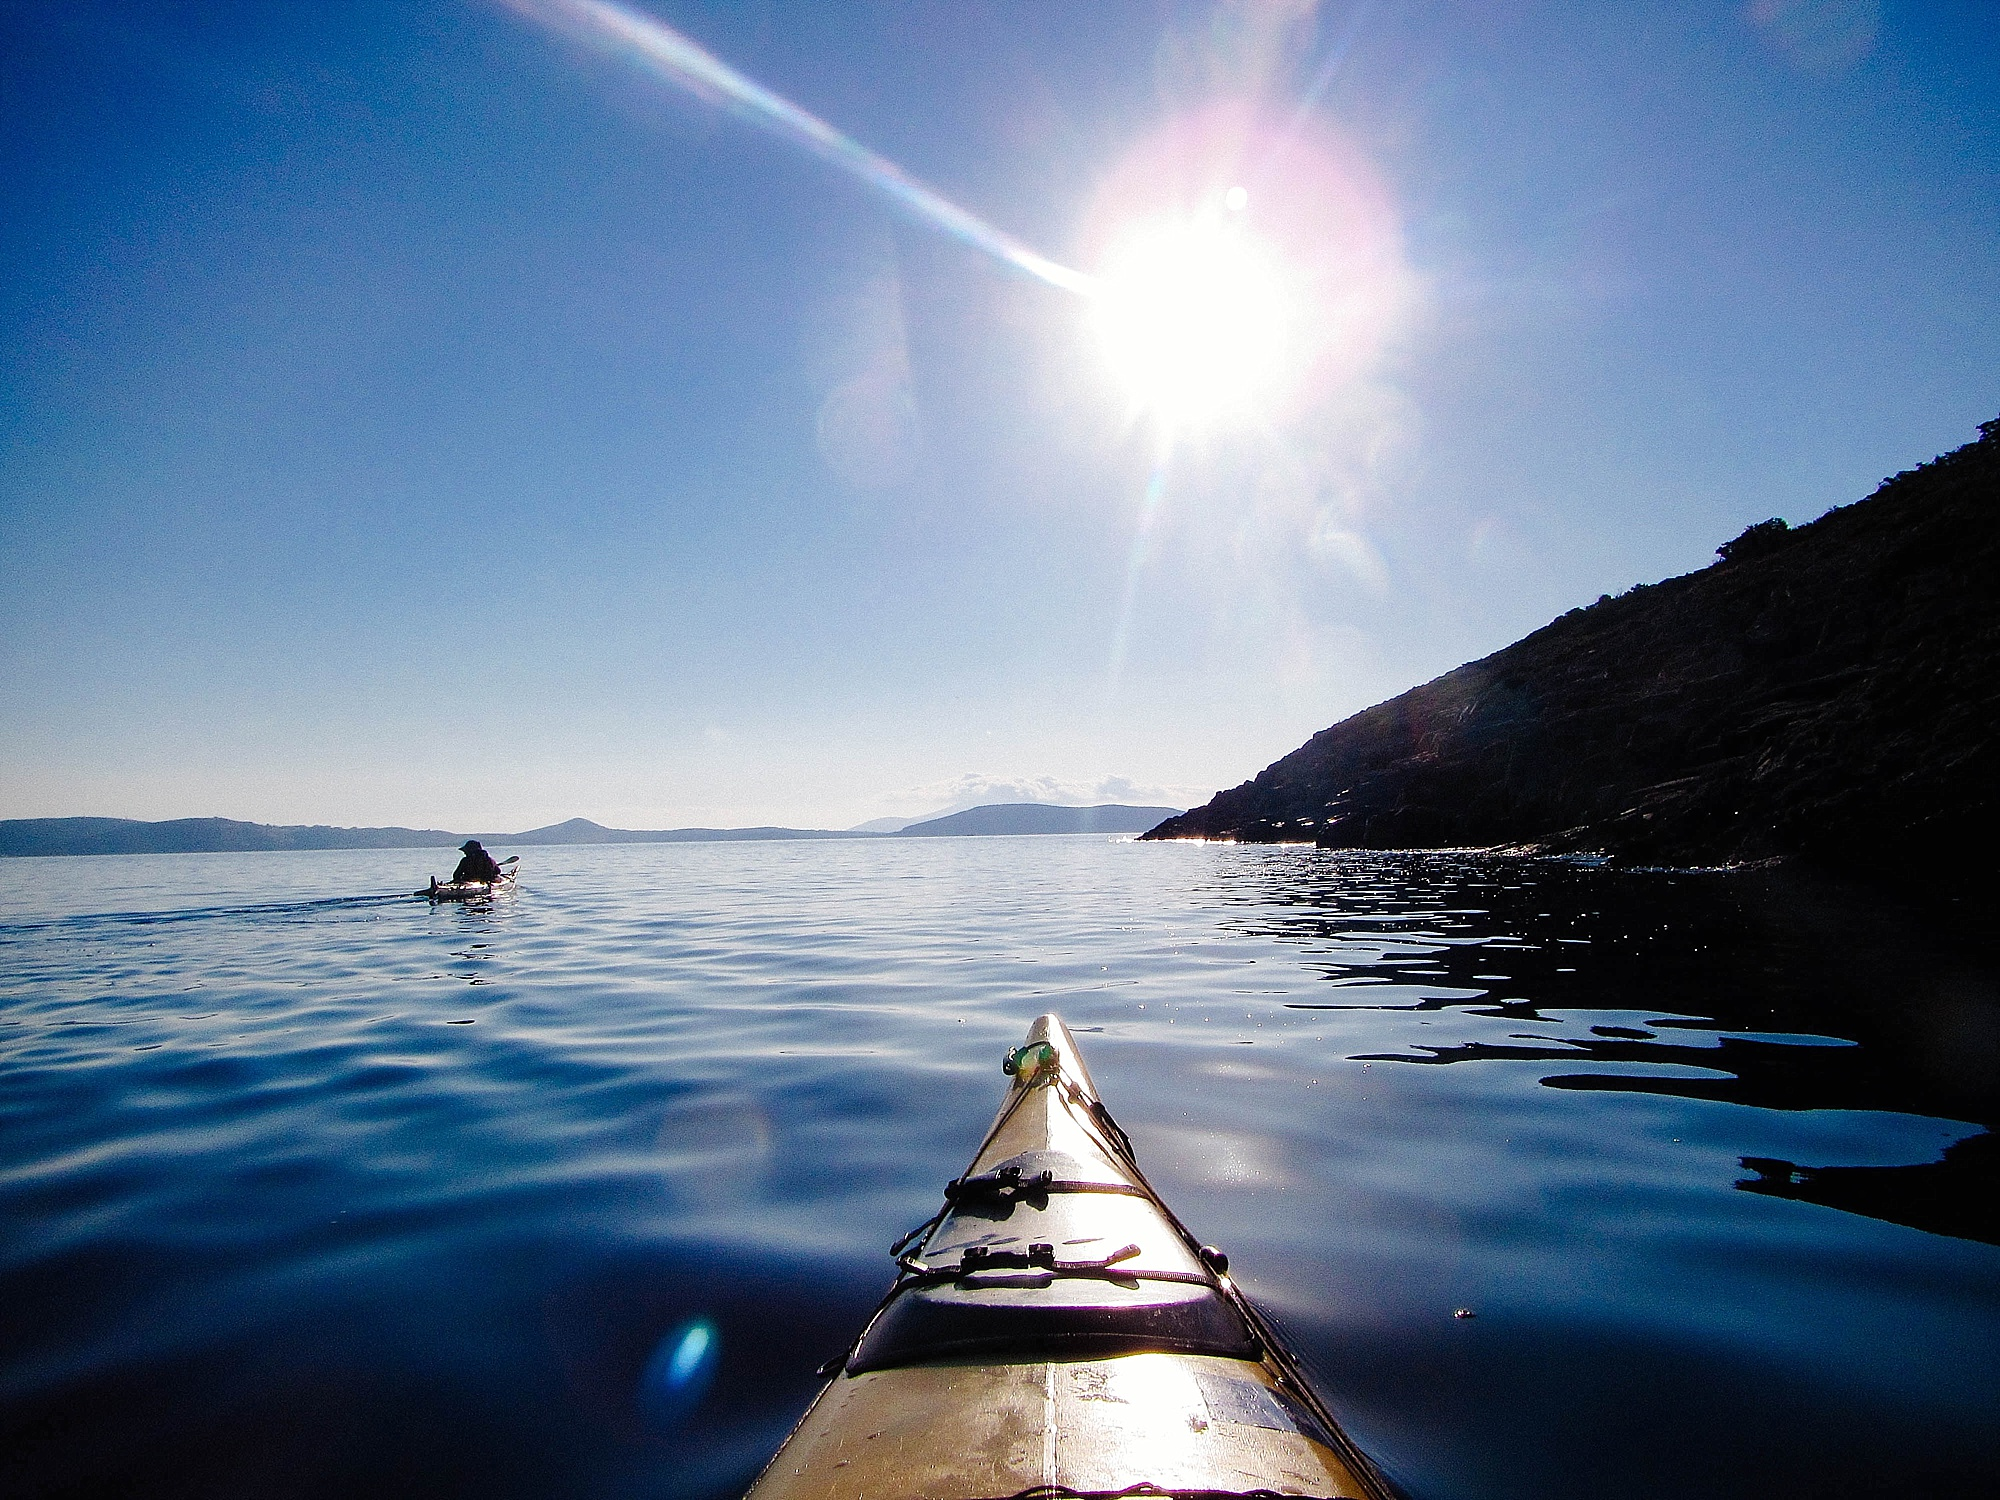 Sunset sea kayaking in Greece by Mister Pretty's Pictures